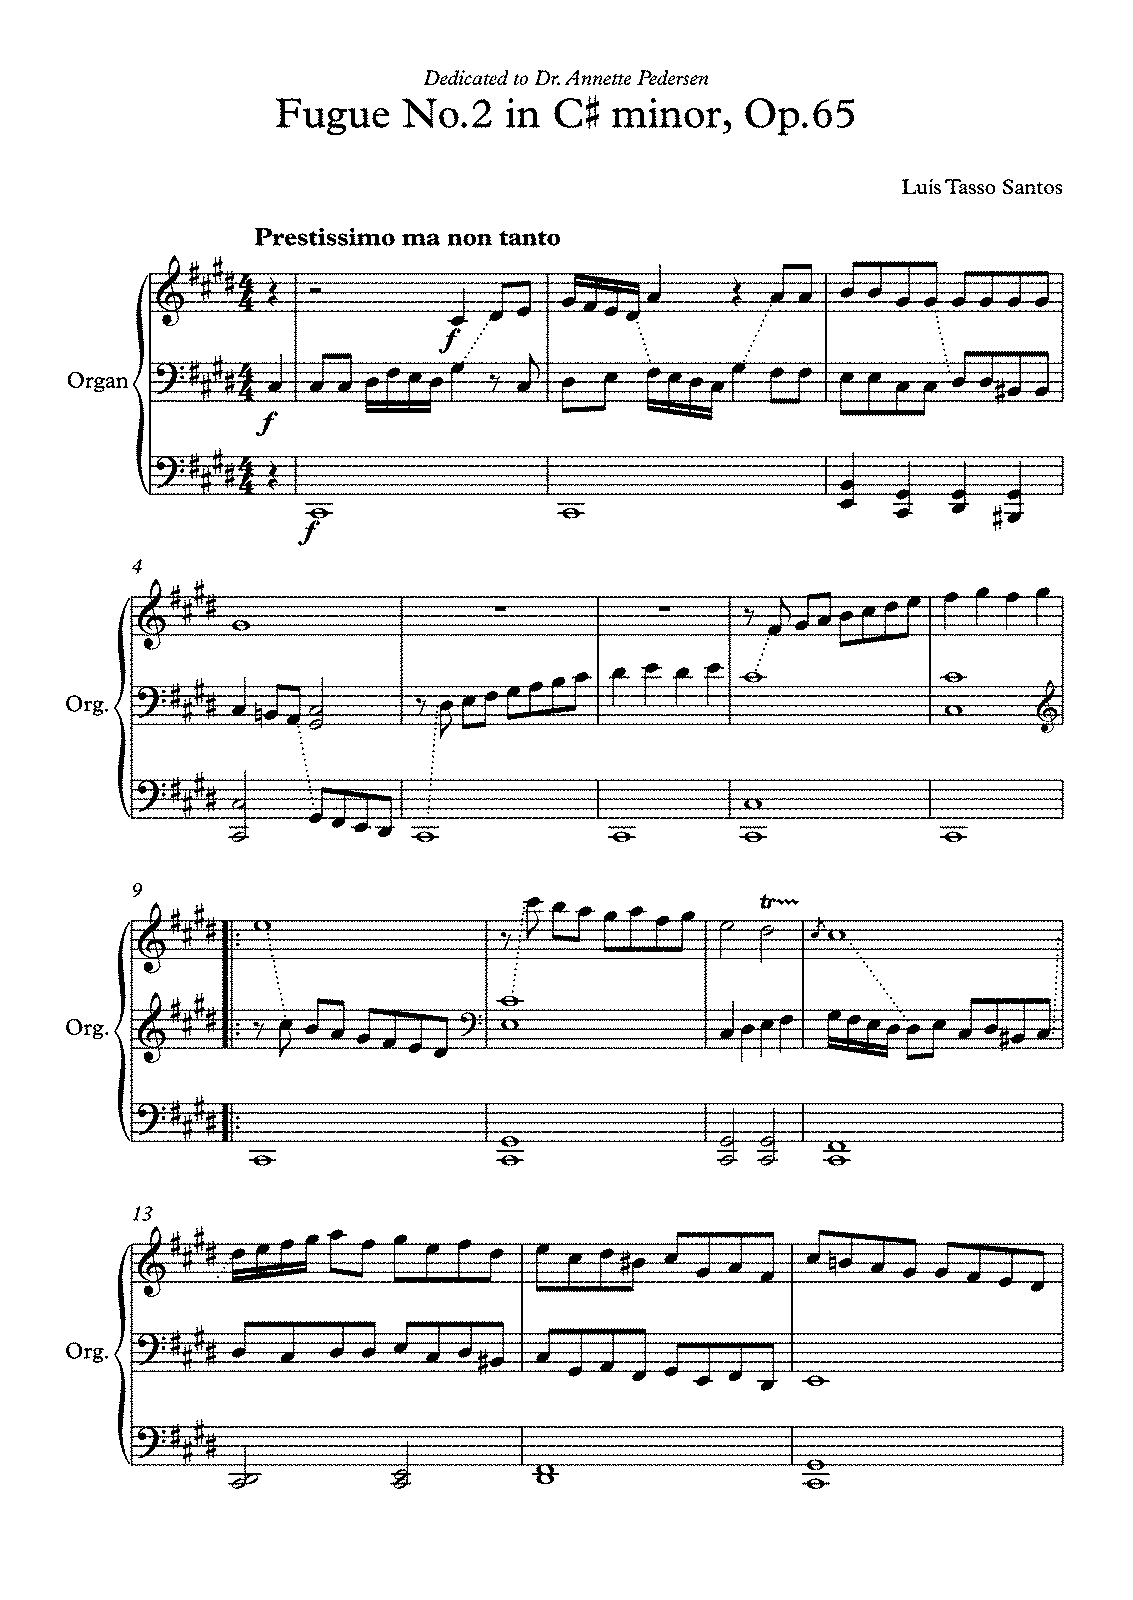 PMLP462259-Fugue No 2 in C- minor, Op 65 - Full Score.pdf